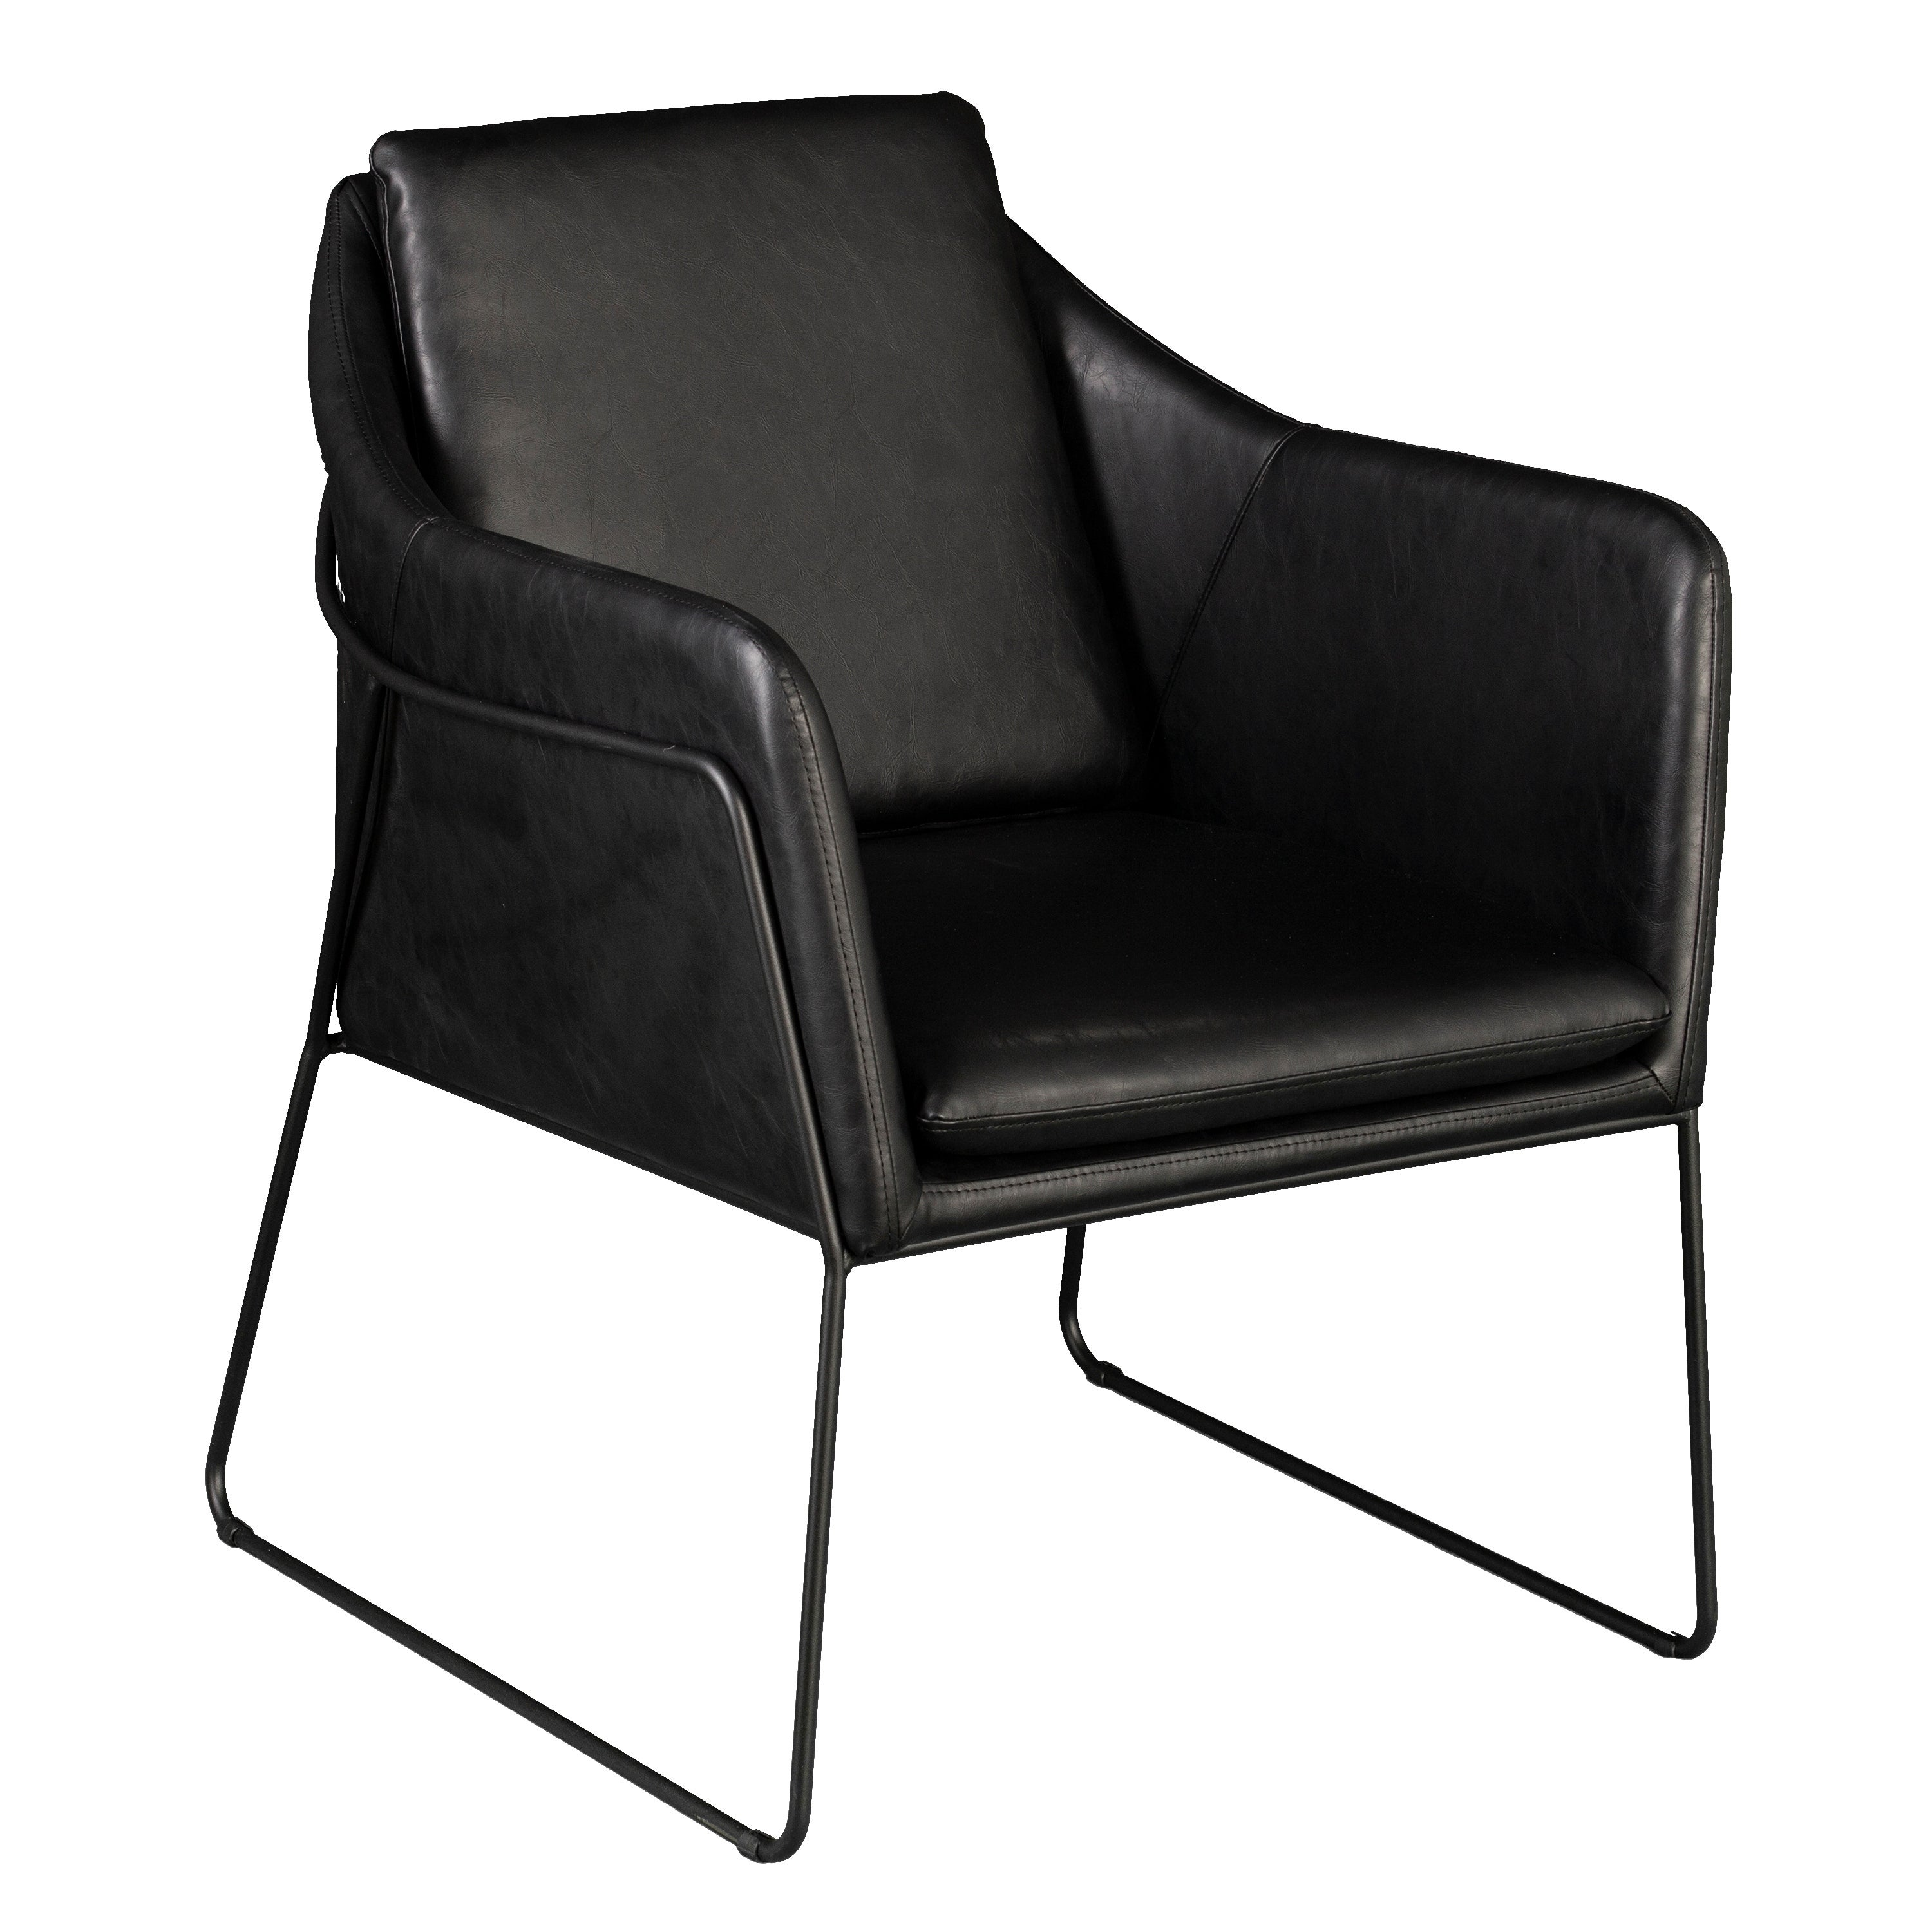 Shop harper blvd faux leather accent chair on sale free shipping today overstock com 22824554